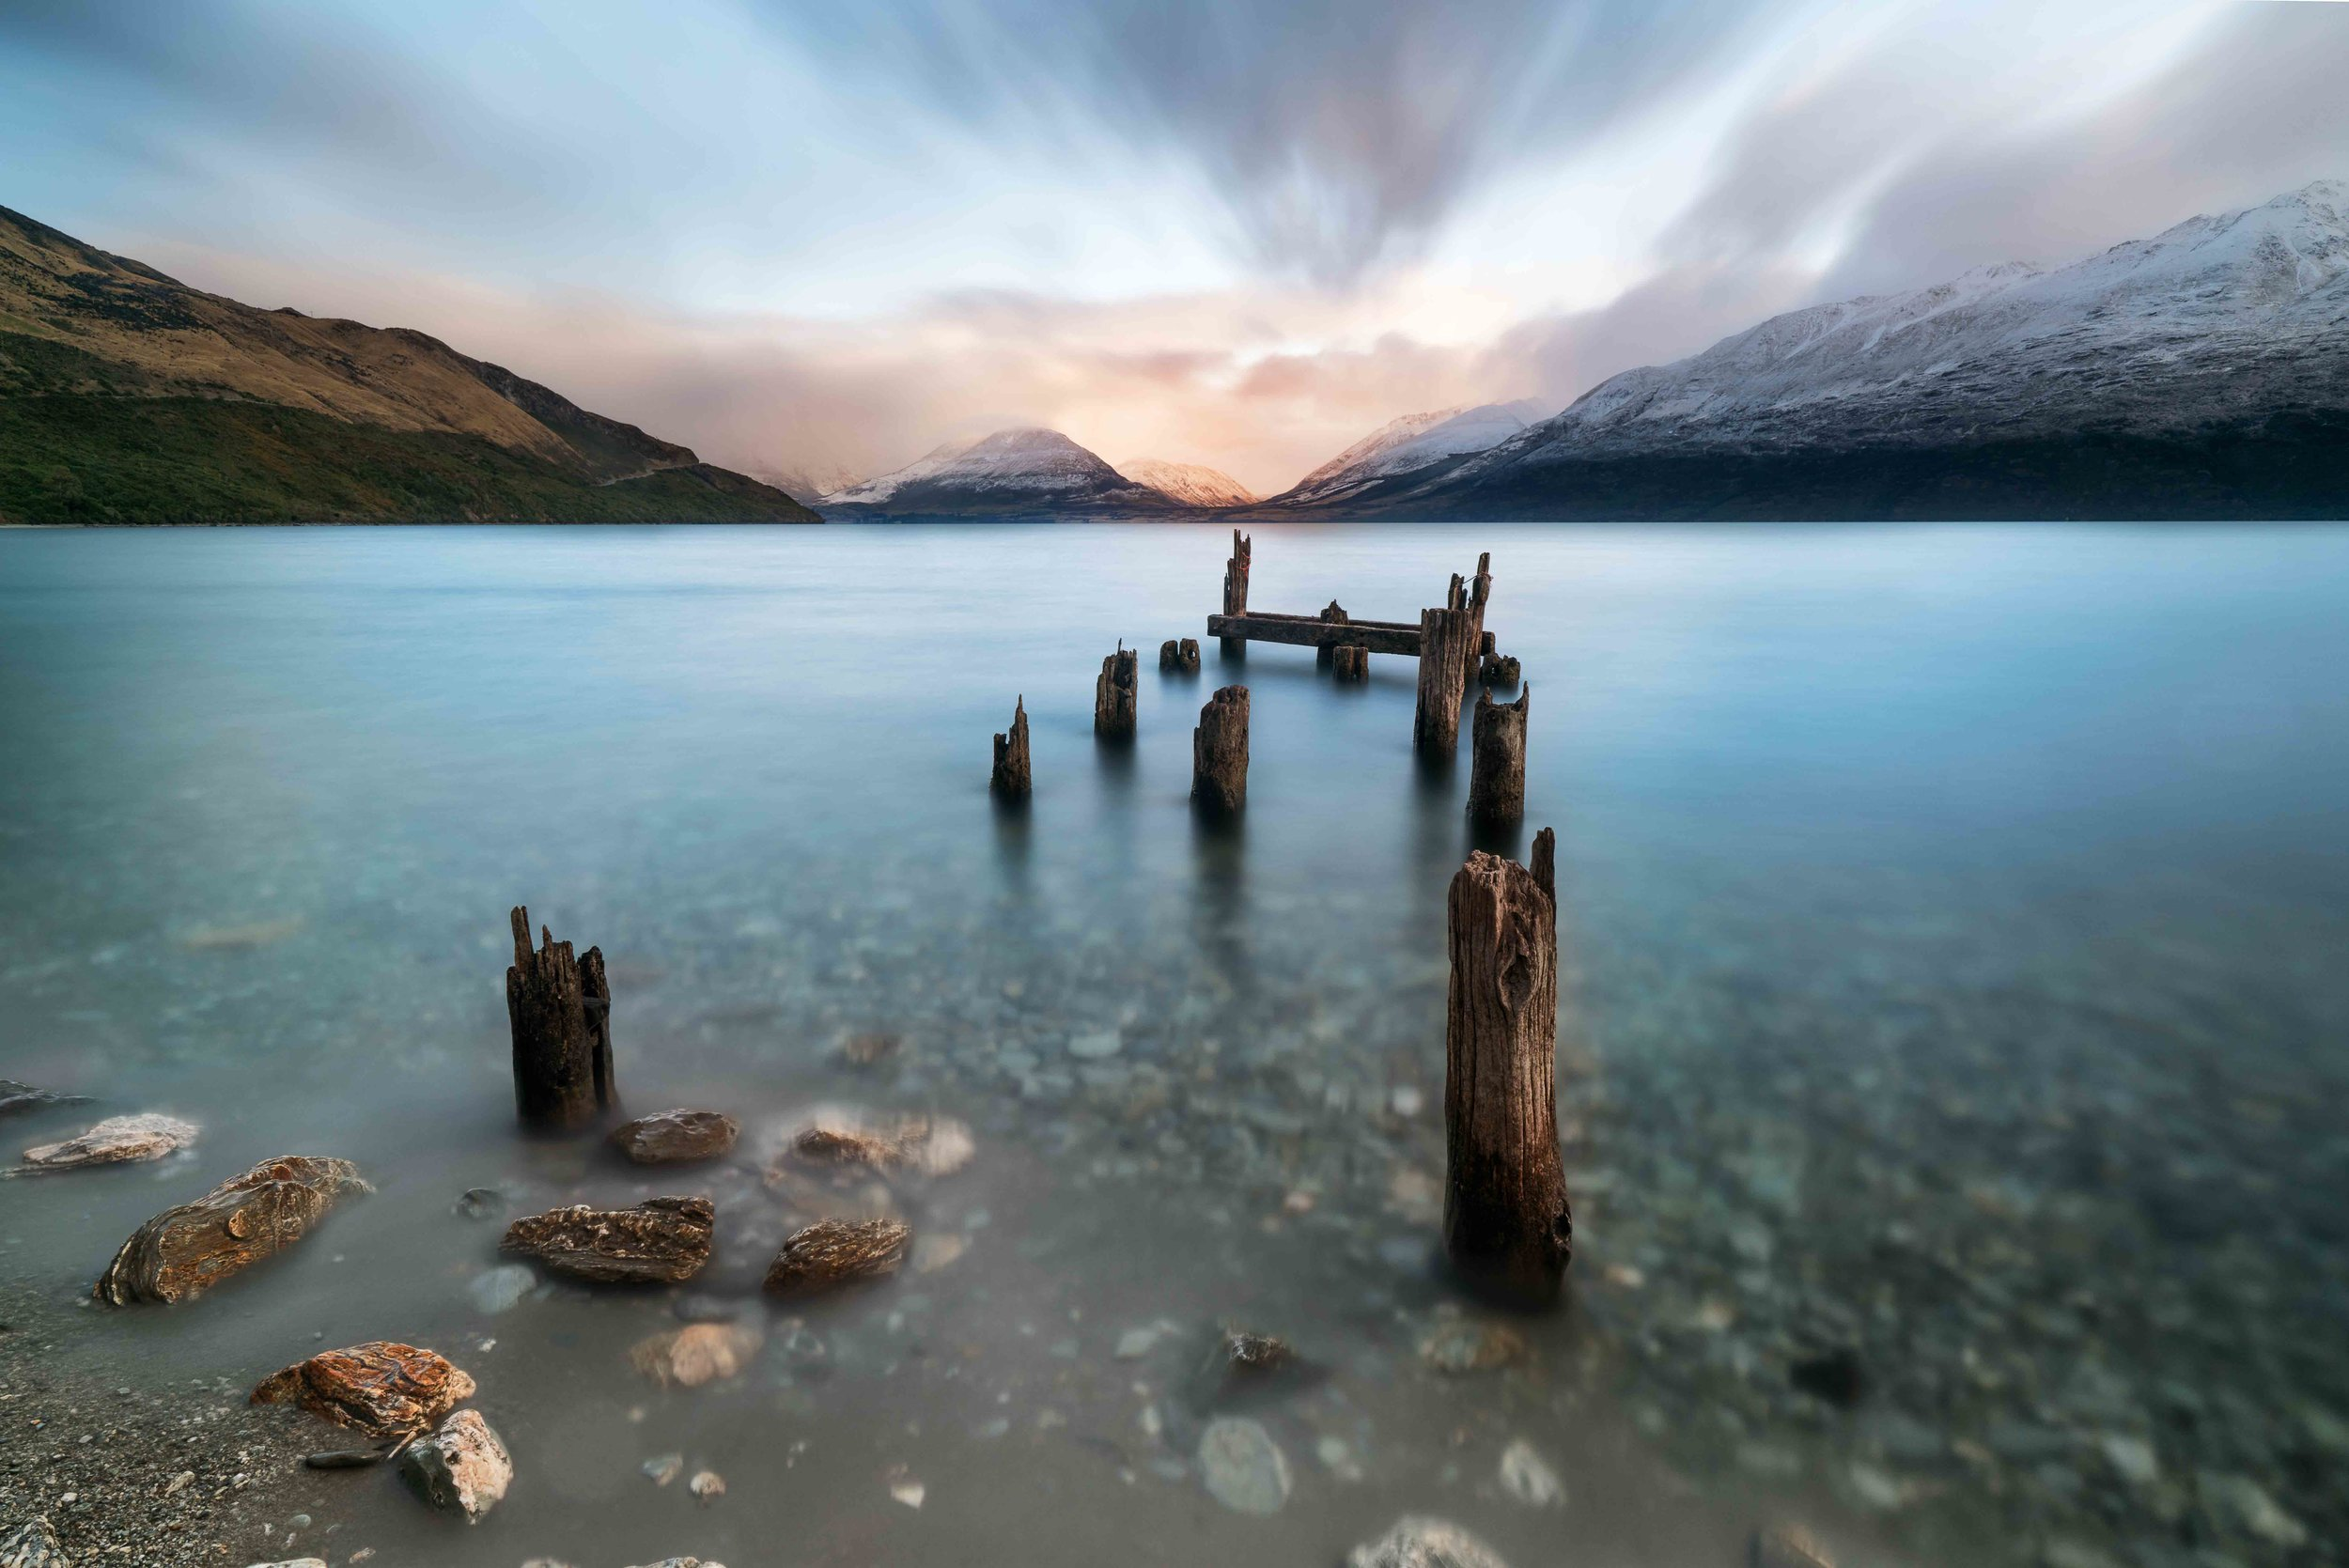 Lake Wakatipu, New Zealand   Ask me where my favourite place in the world is? Queenstown. No question. There might be places more beautiful and more suited to my life style, i just haven't been there yet. For now, I'm ready to move to Queenstown when my wife says yes. Mountains to bike and landscapes to photograph, I'm sorted.